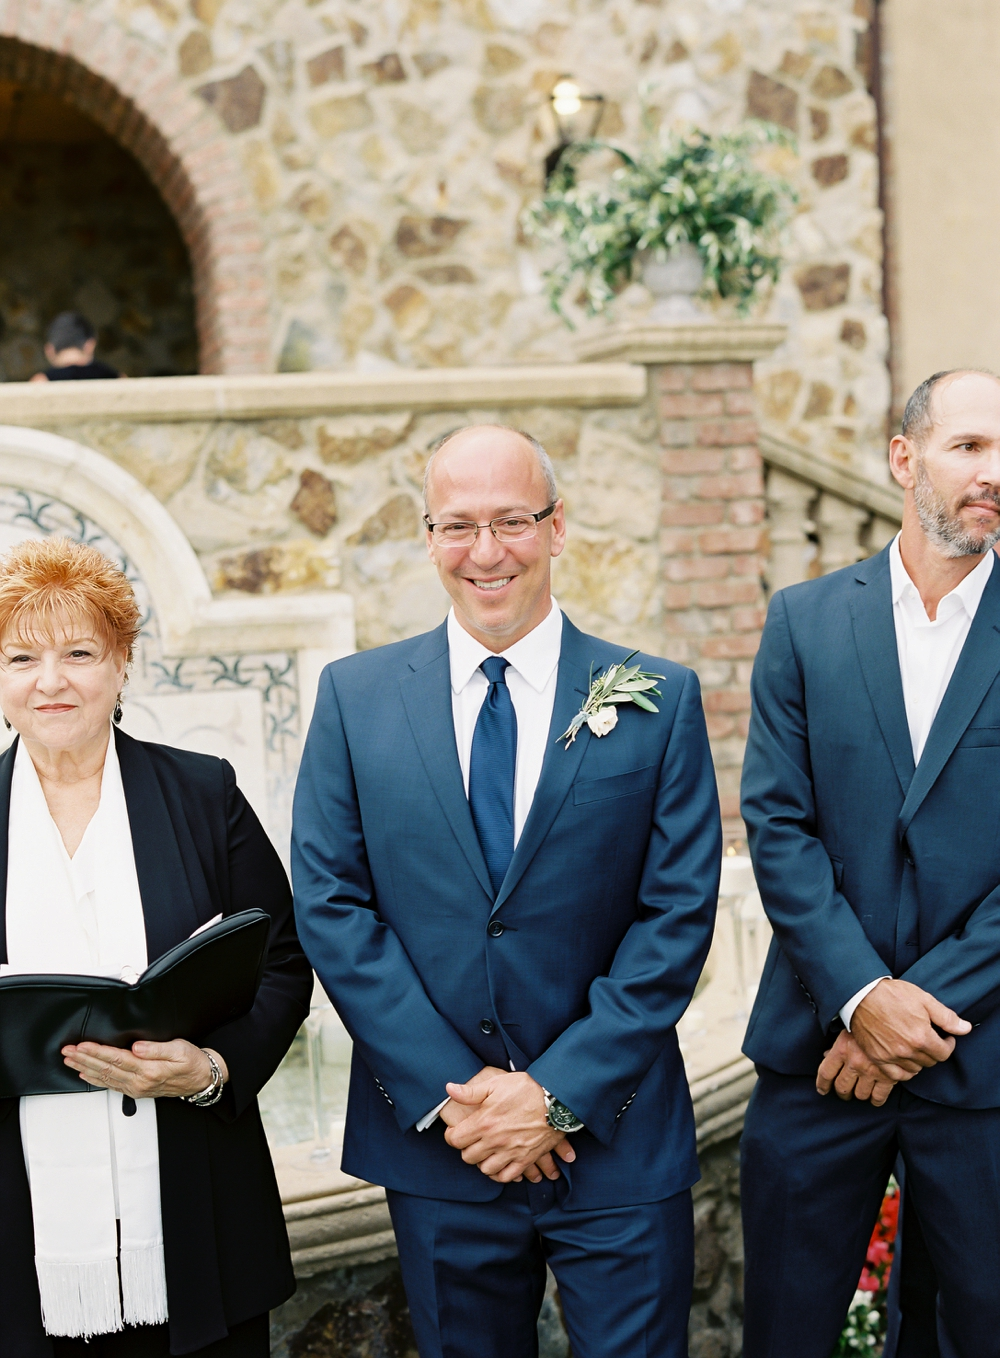 Vicki Grafton Photography - Fine Art Film Wedding Photographer - Bella Collina Wedding_0051.jpg